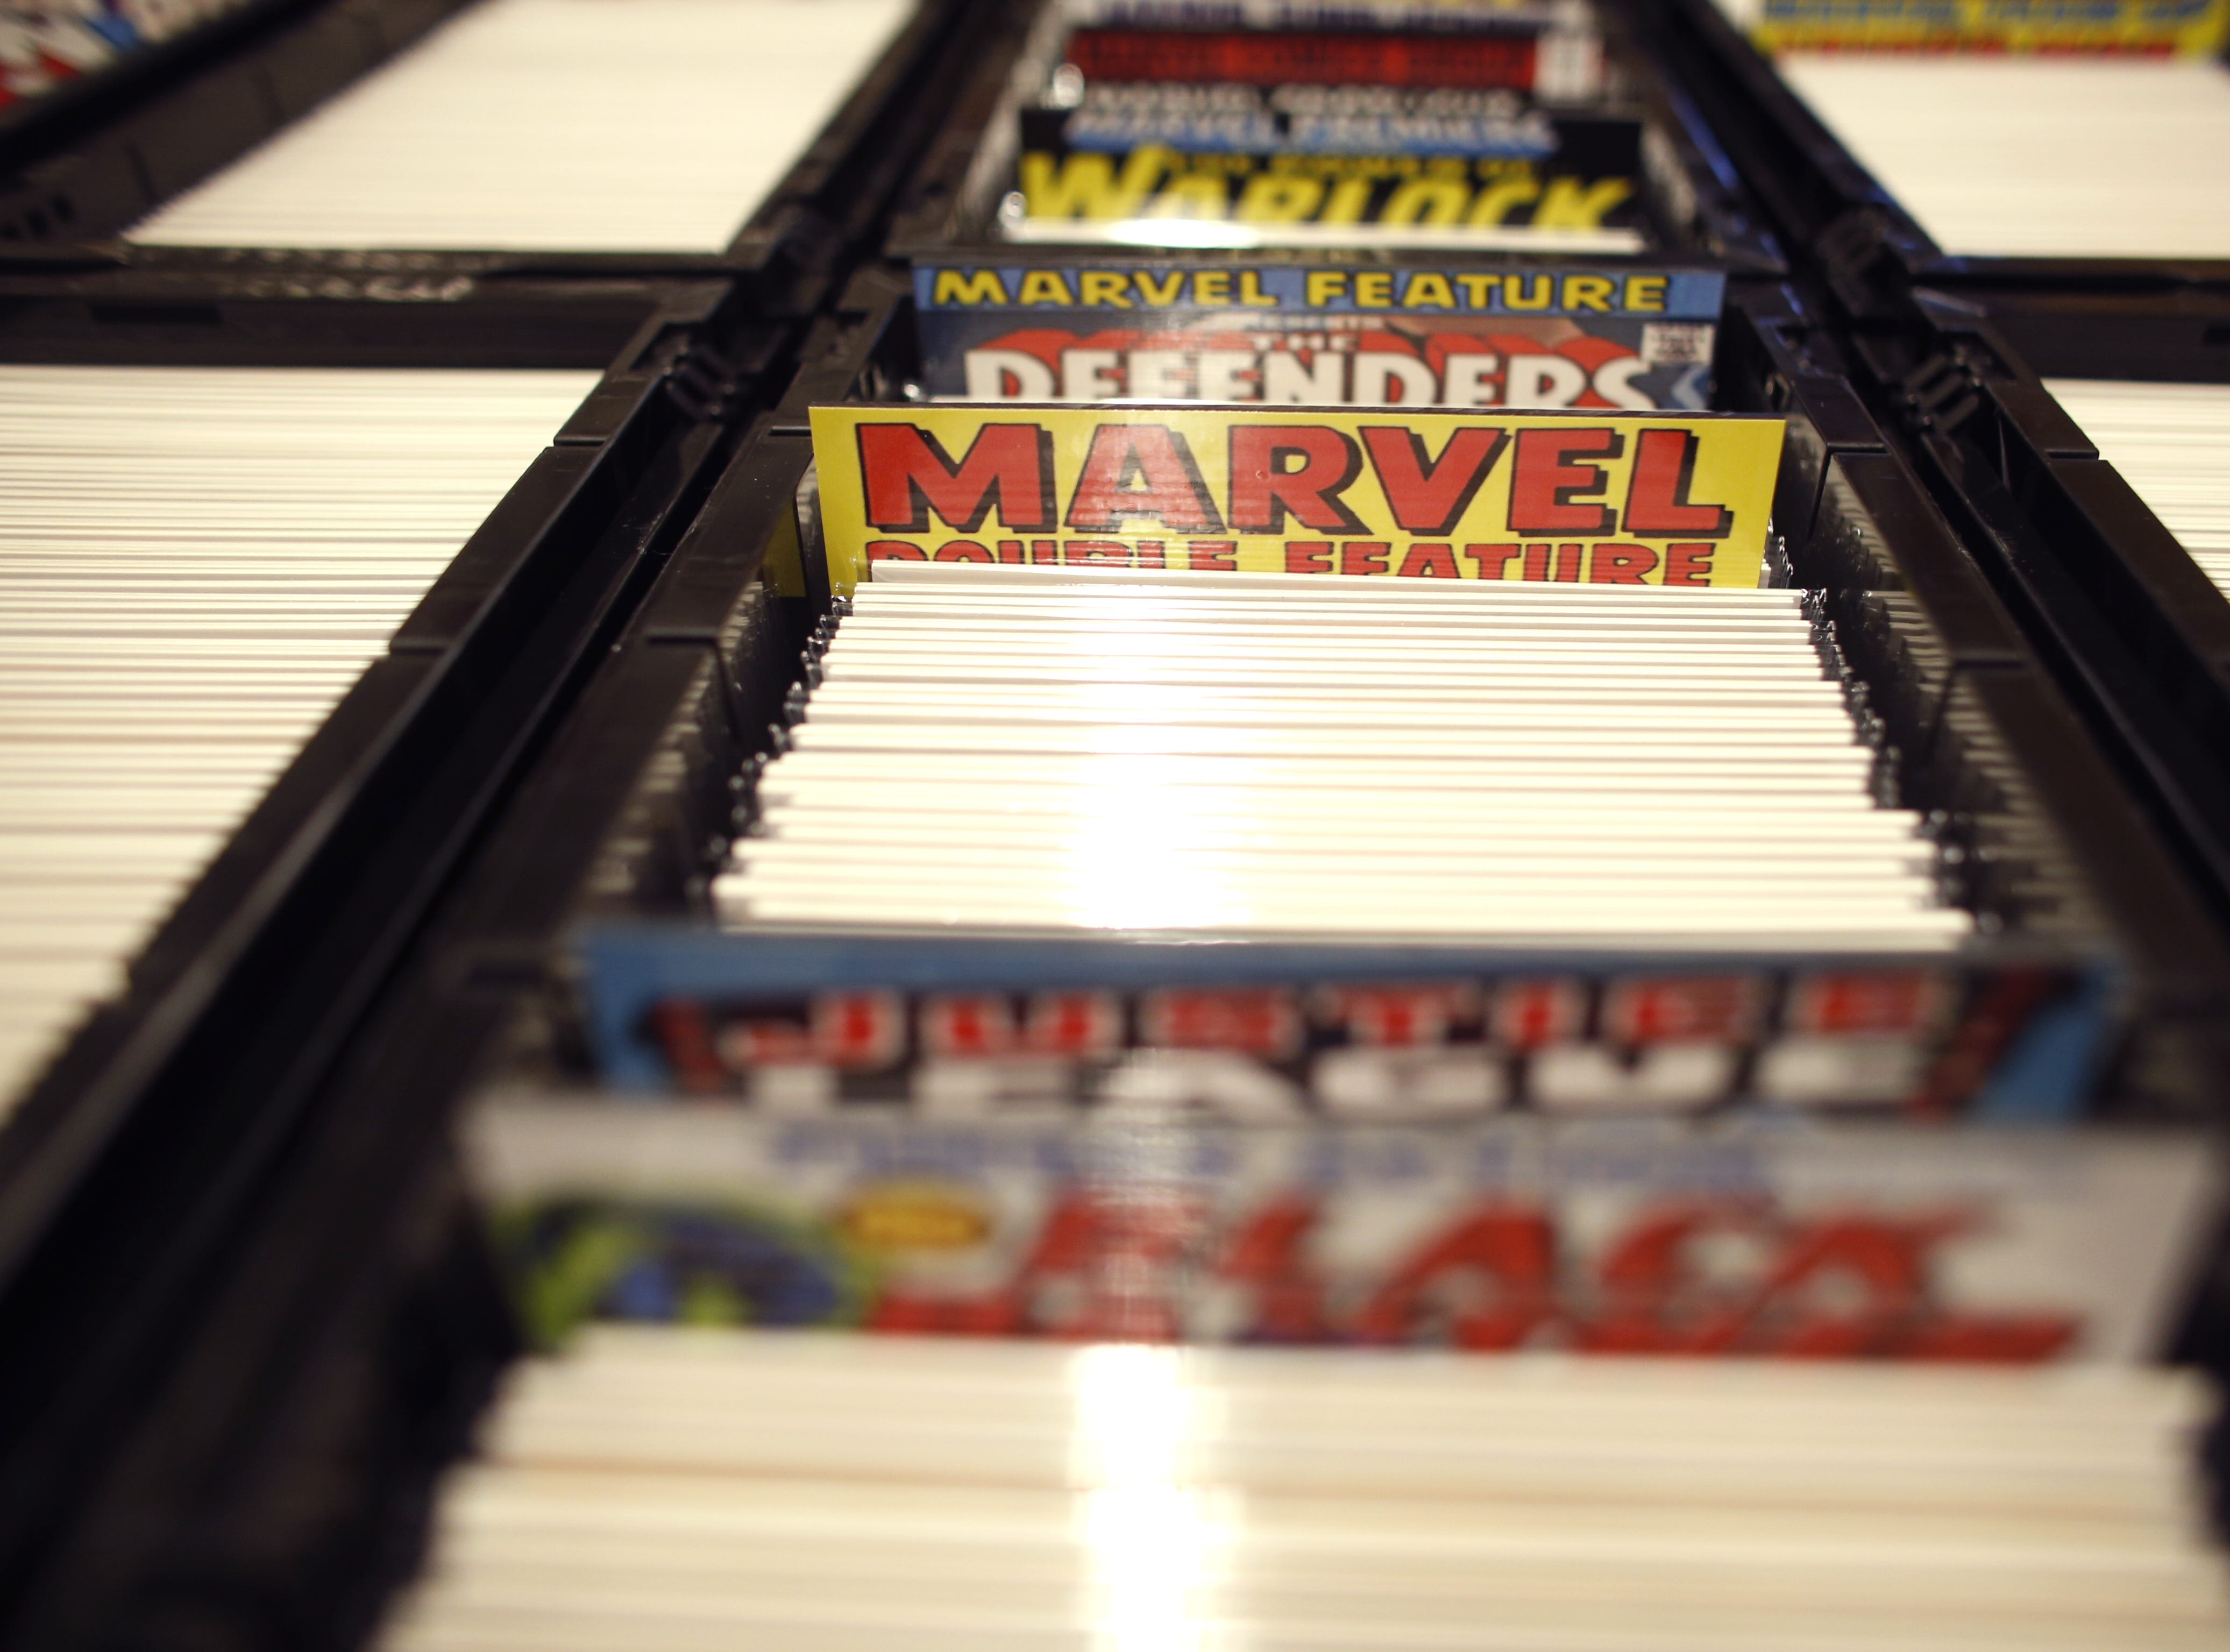 Comics sit for sale during the opening day of Ace Comic Con 2019 at Gila River Arena in Glendale, Ariz. on Jan. 11, 2019.